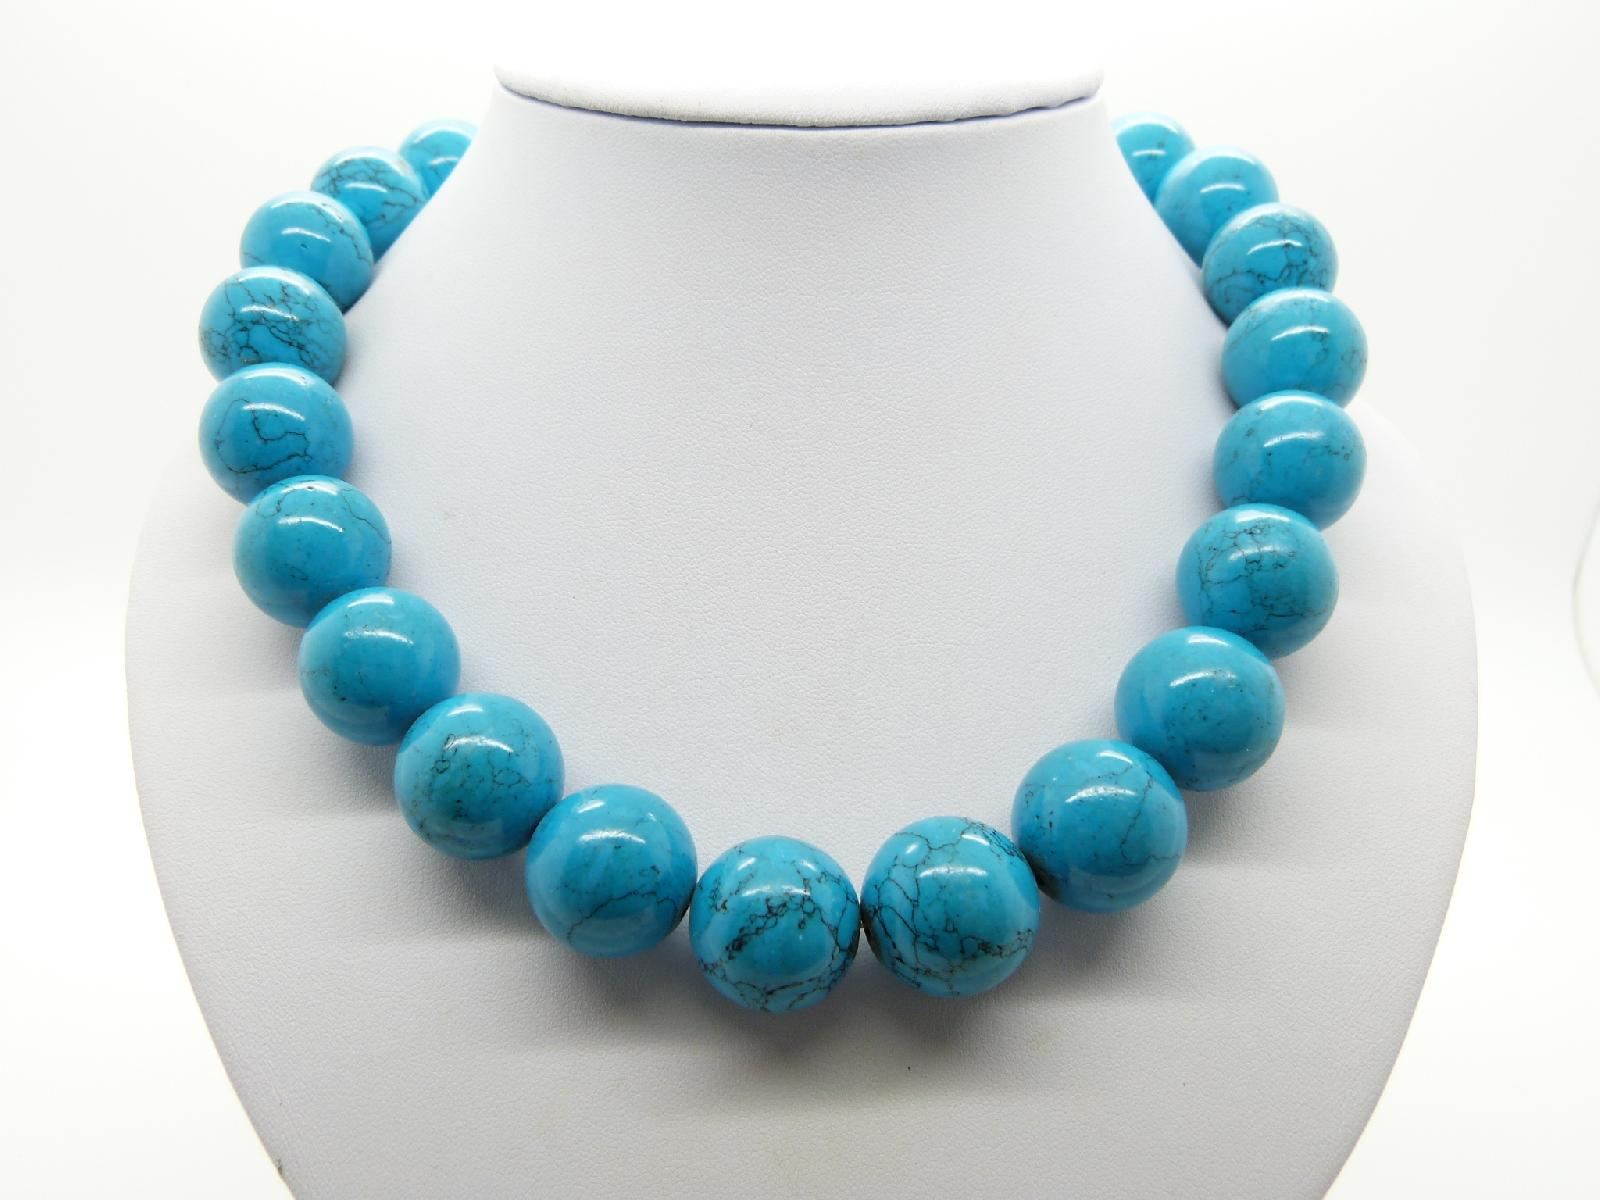 £50.00 - Stunning and Elegant Real Turquoise Chunky Bead Statement Necklace